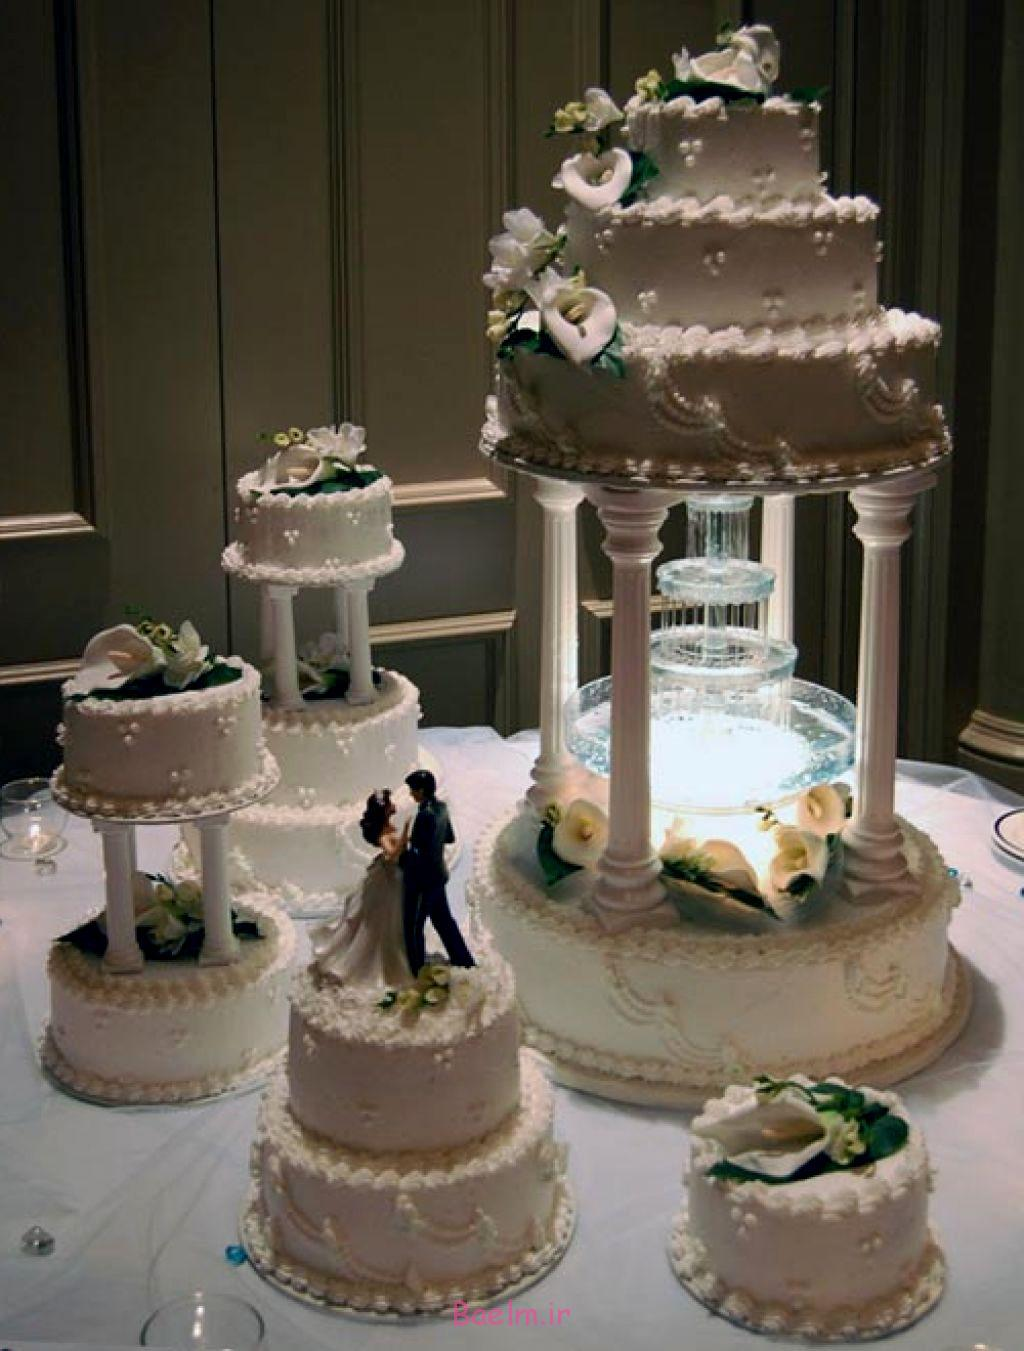 wedding-cakes-with-fountains-designs-wedding-cakes-with-lights-and-fountains